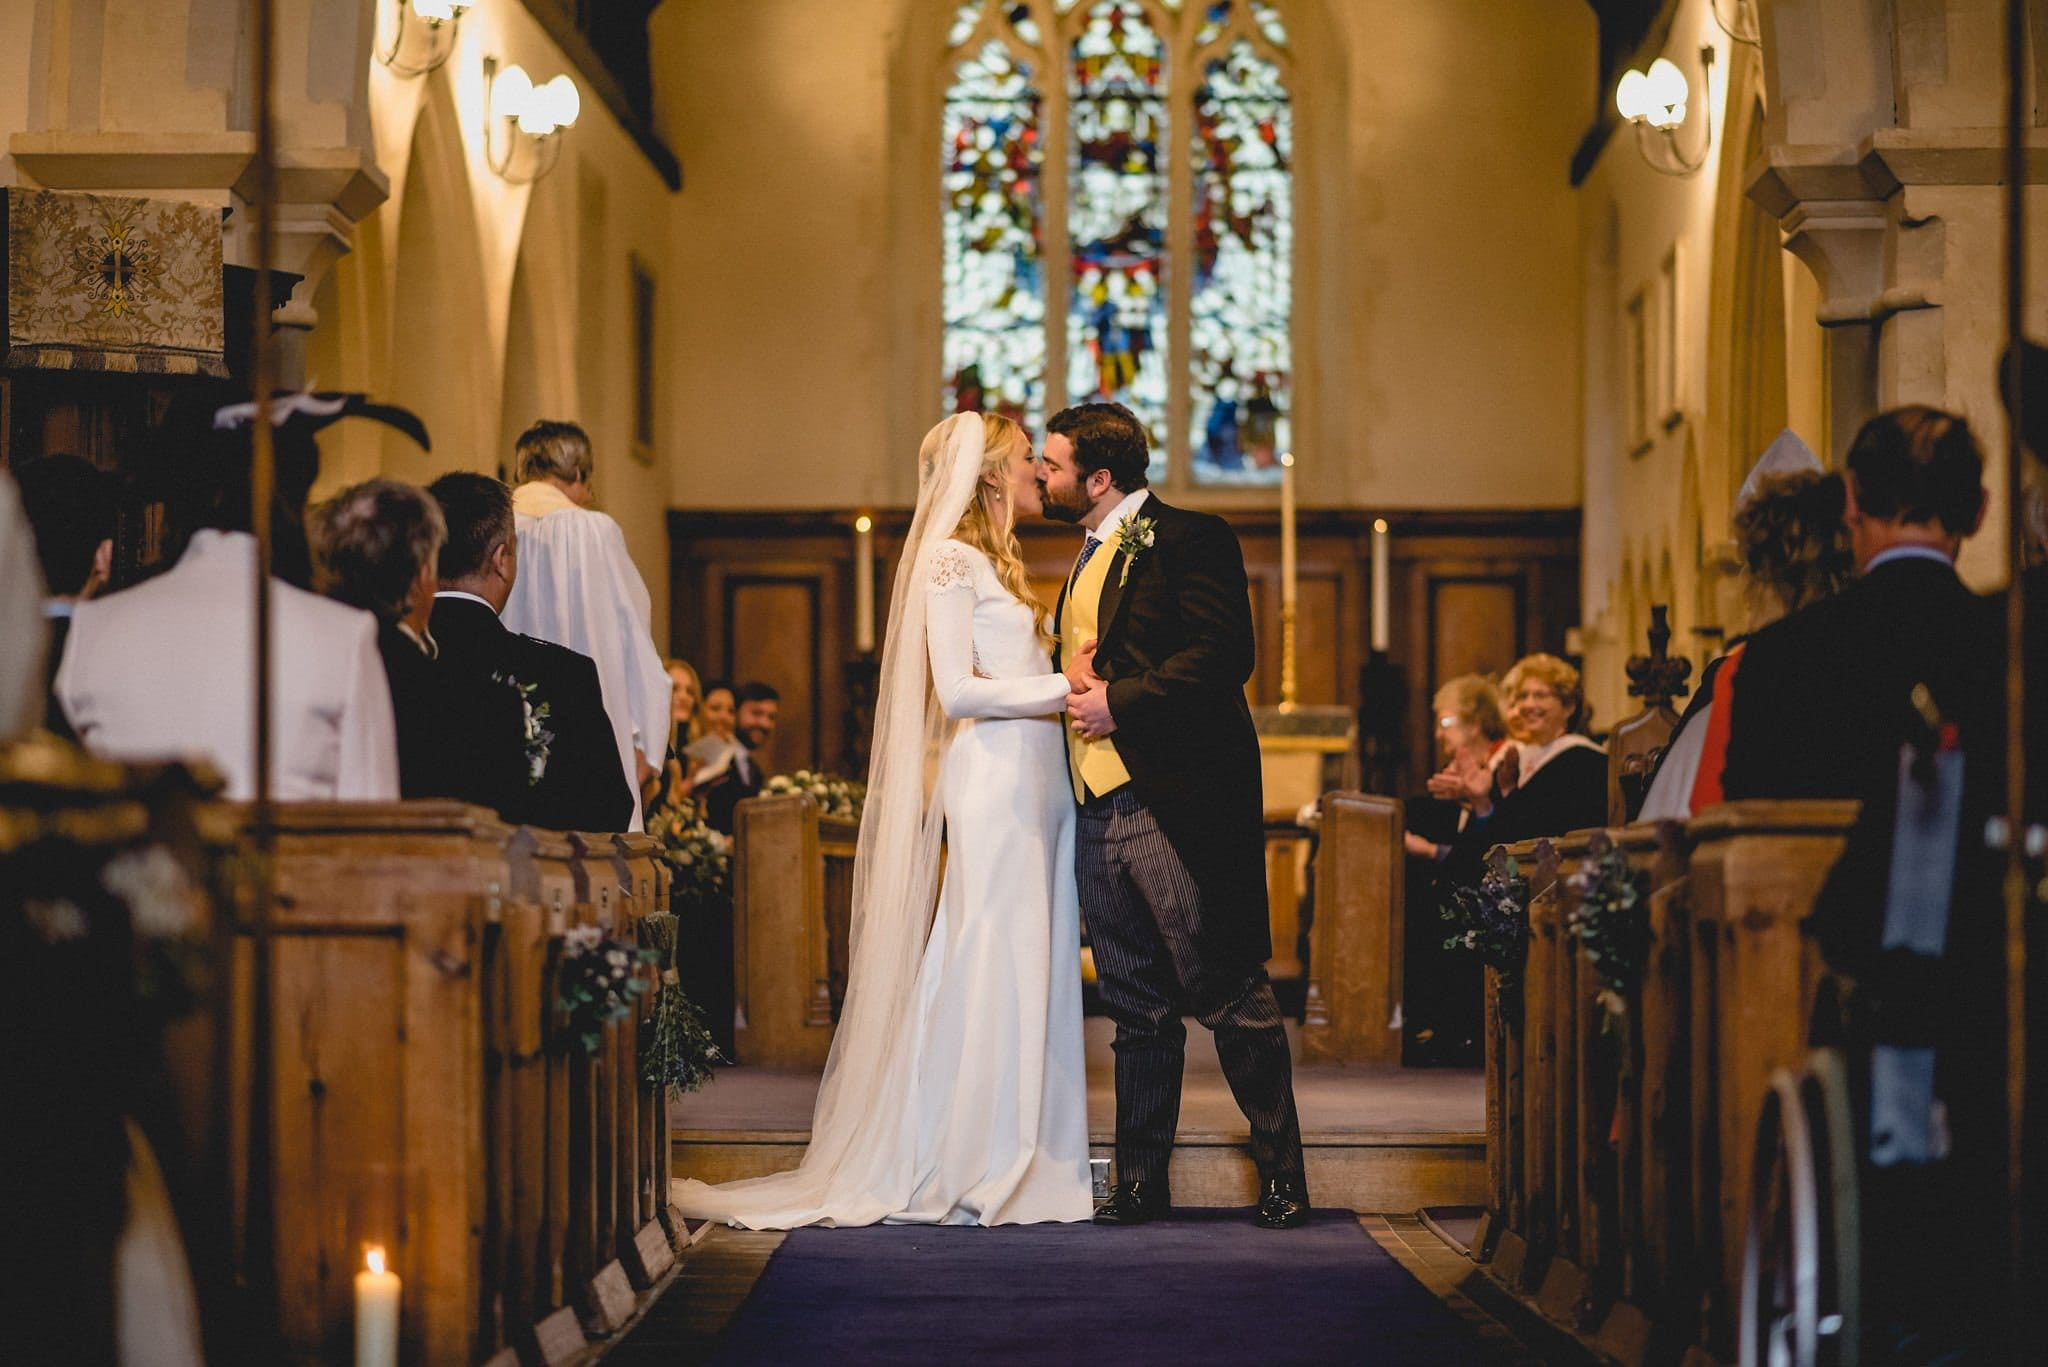 Bride and groom kiss in church